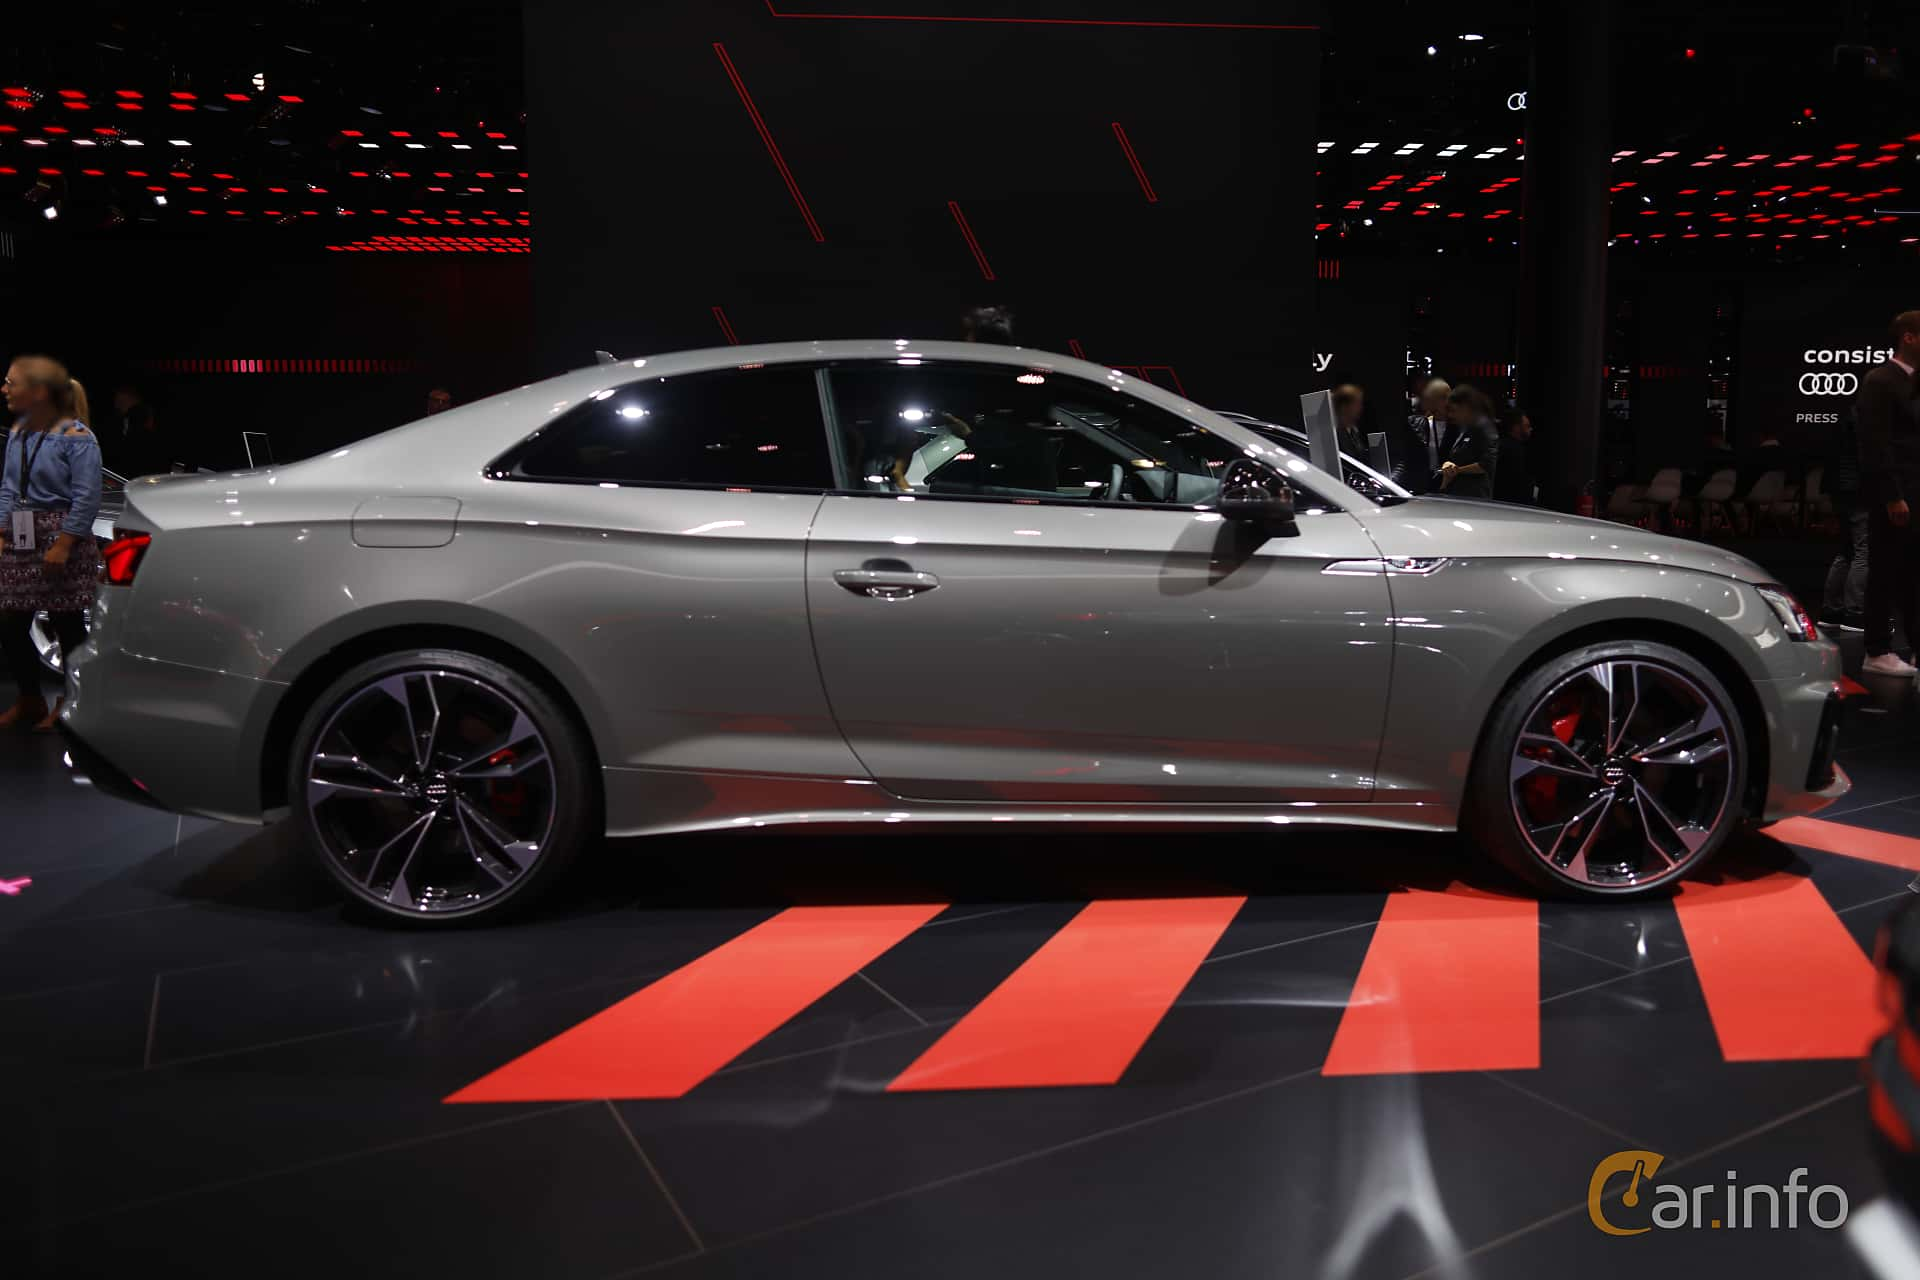 Audi S5 TDI Coupé 3.0 TDI quattro TipTronic, 347hp, 2020 at IAA 2019